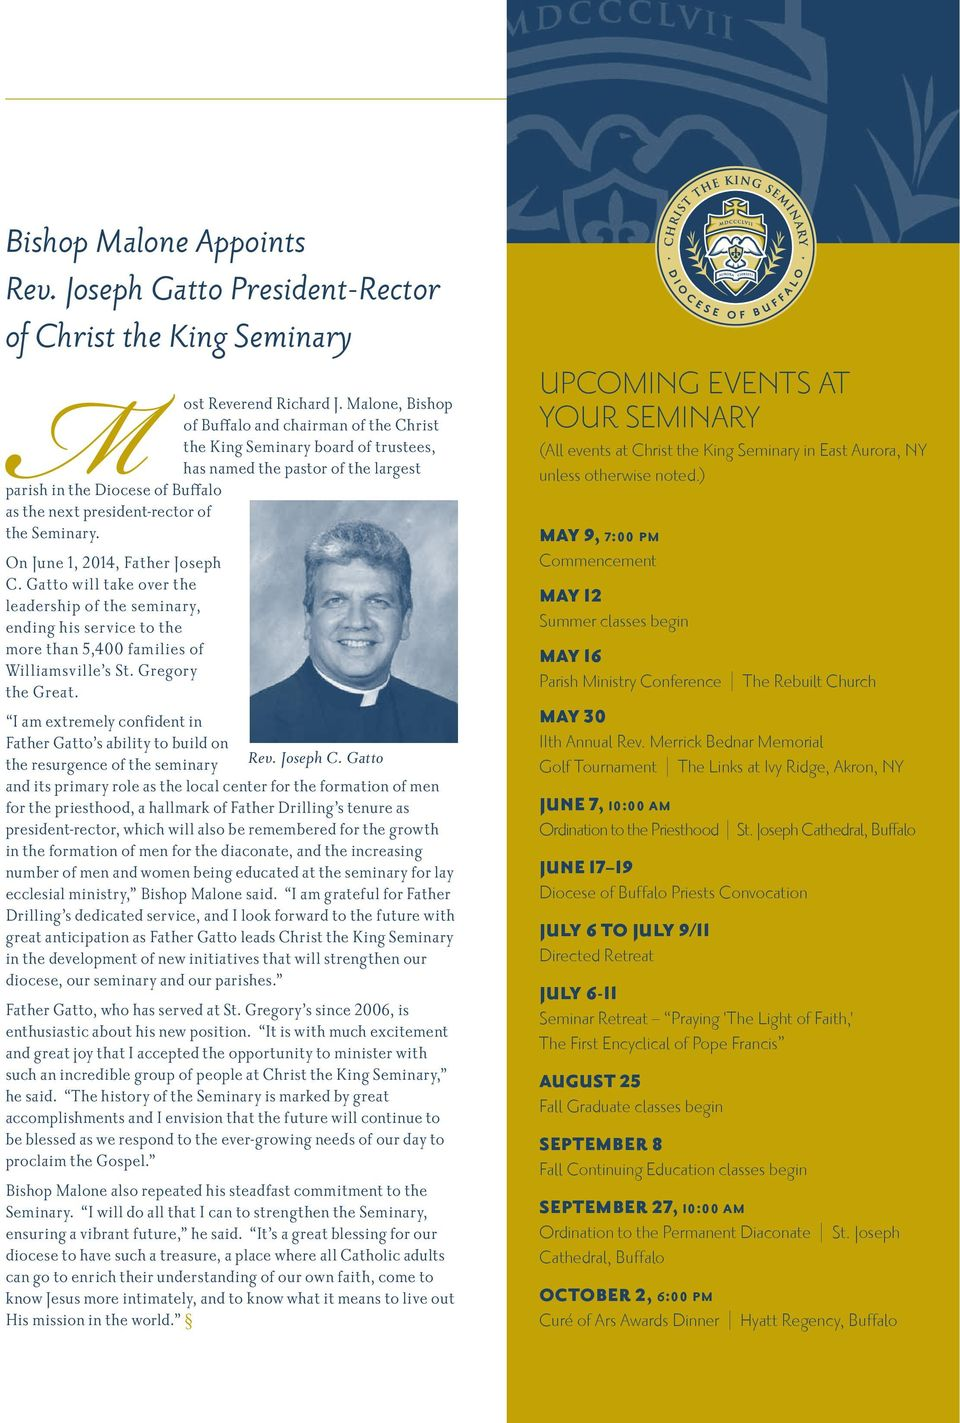 Seminary. On June 1, 2014, Father Joseph C. Gatto will take over the leadership of the seminary, ending his service to the more than 5,400 families of Williamsville s St. Gregory the Great.